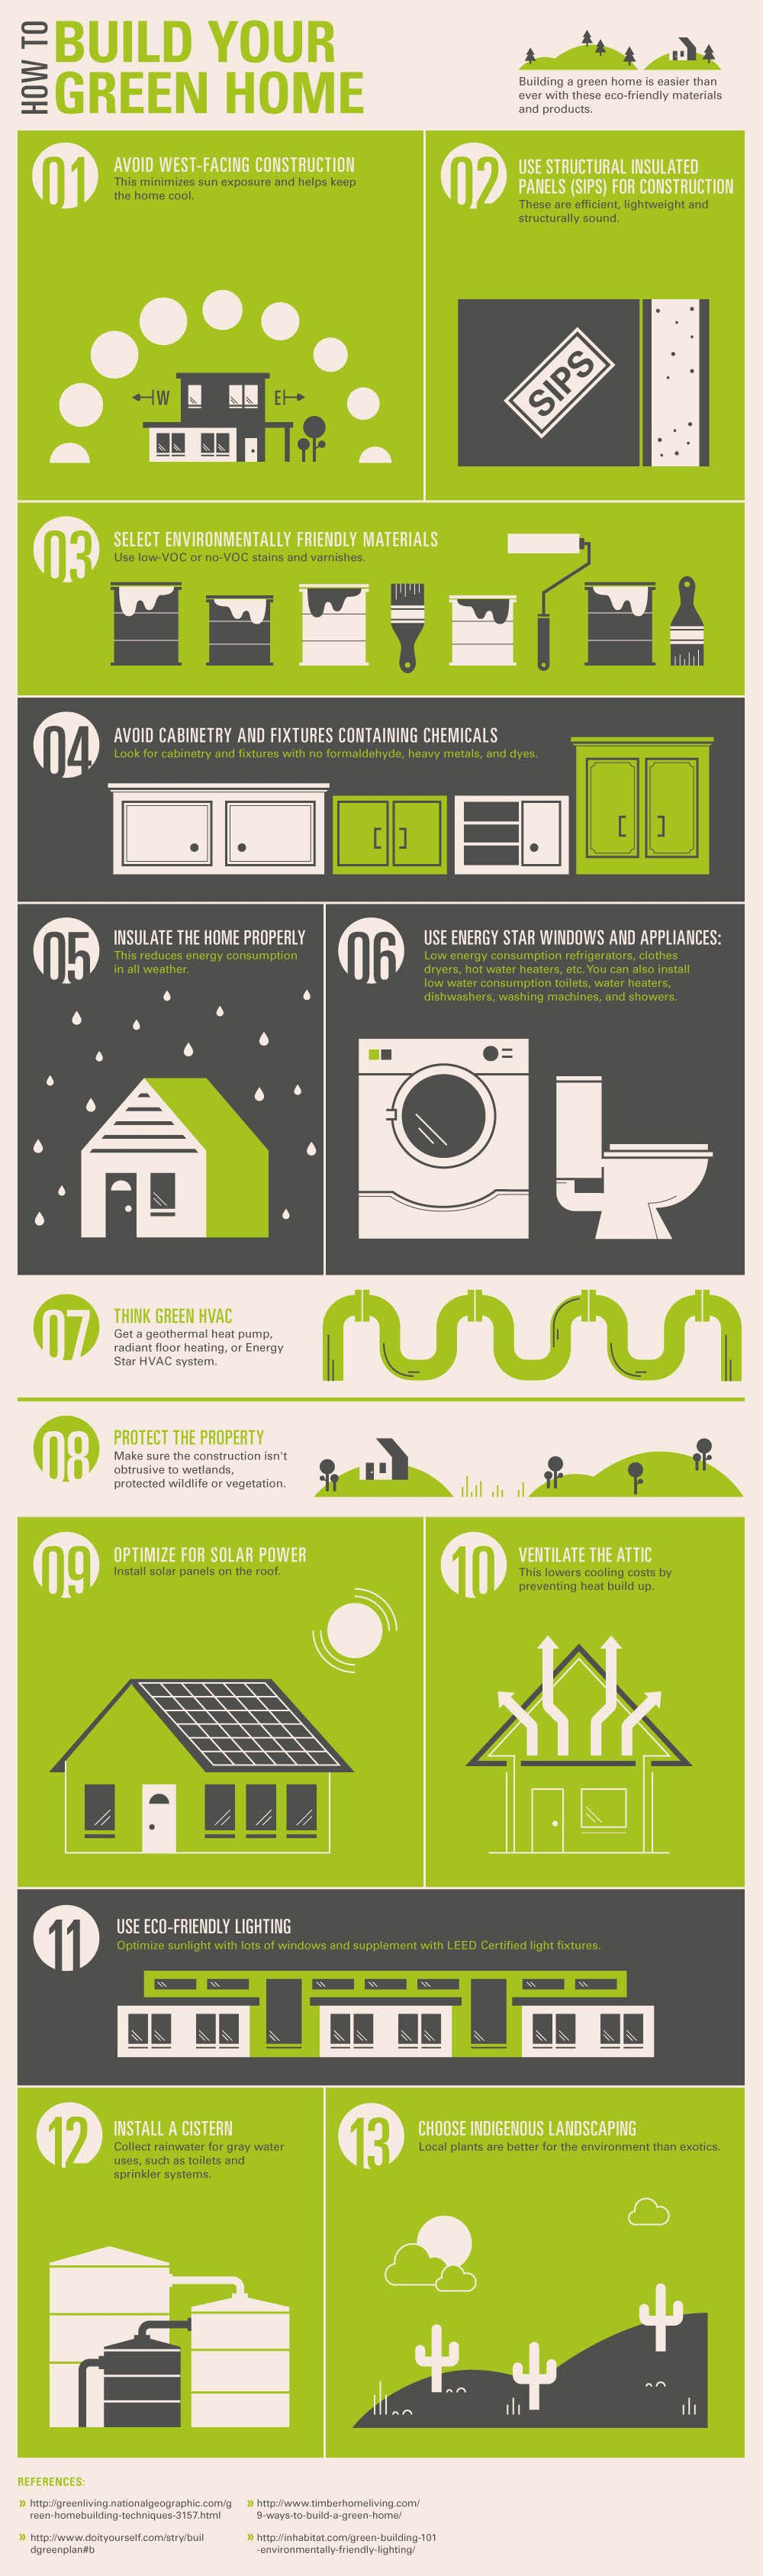 Looking to build your green home? Check out this infographic! 13 Elements  of a Dream Green Home-Infographic